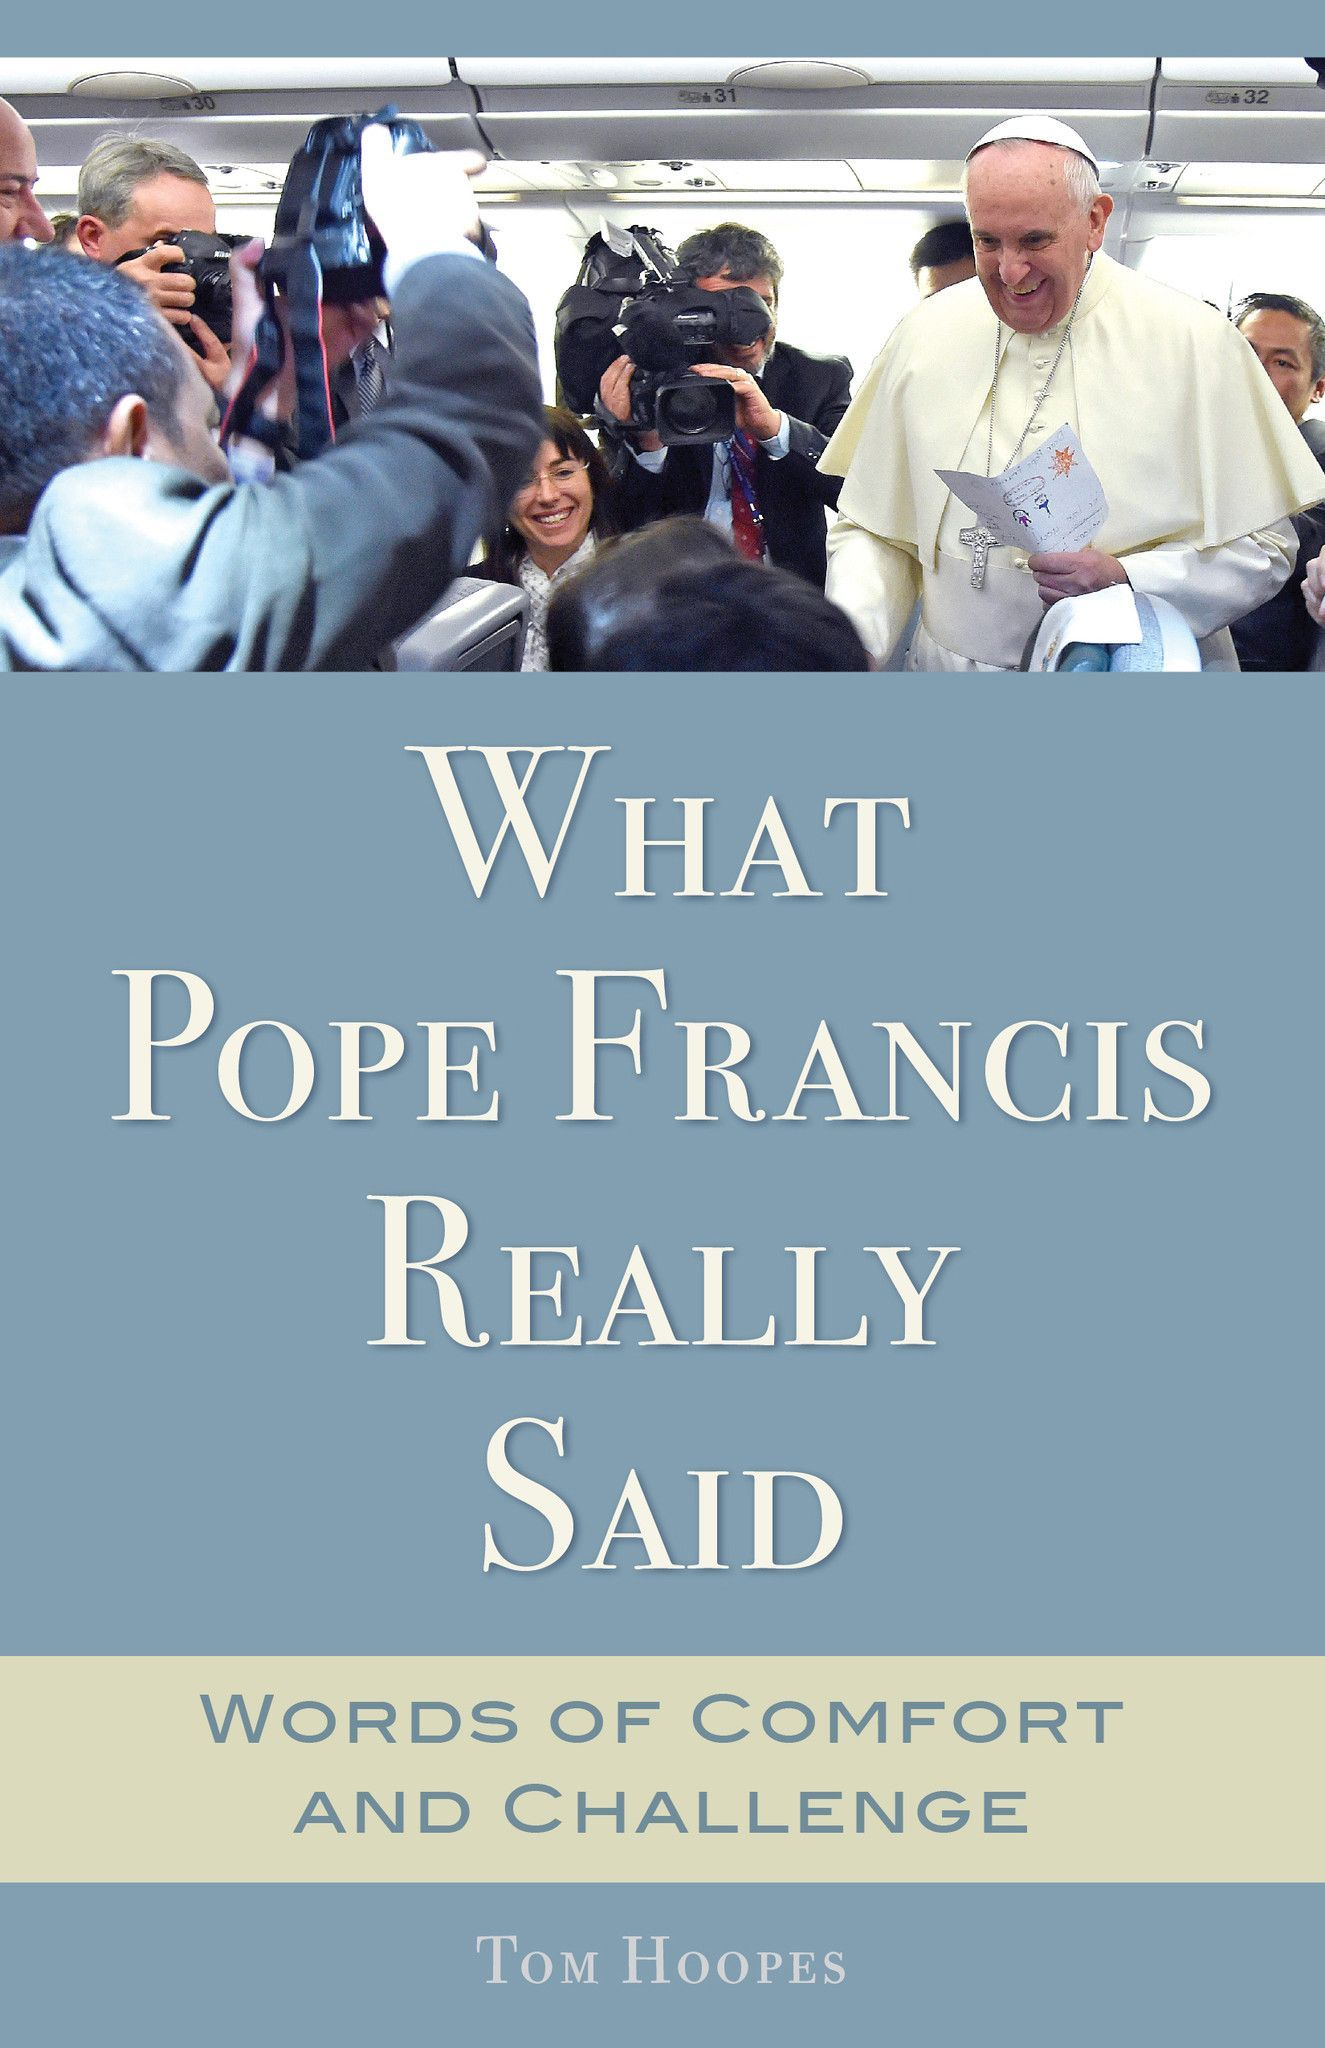 What Pope Francis Really Said: Words of Comfort and Challenge